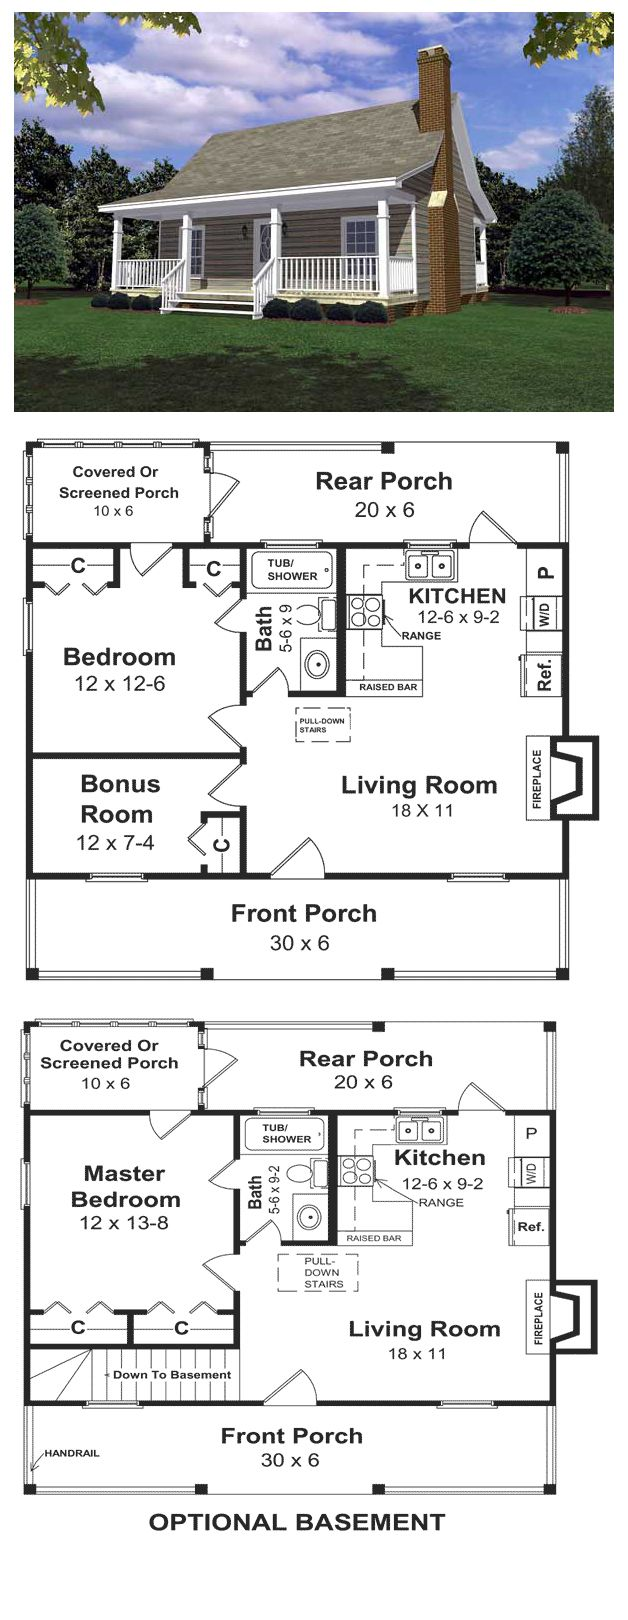 House Plan 59039 | Total living area: 600 sq ft, 1 bedroom & 1 bathroom. Designed for a weekend get-a-way for the woods, the lake or the beach. Relax in all summer/winter long in this cottage featuring. everything you need for the ideal short vacation.